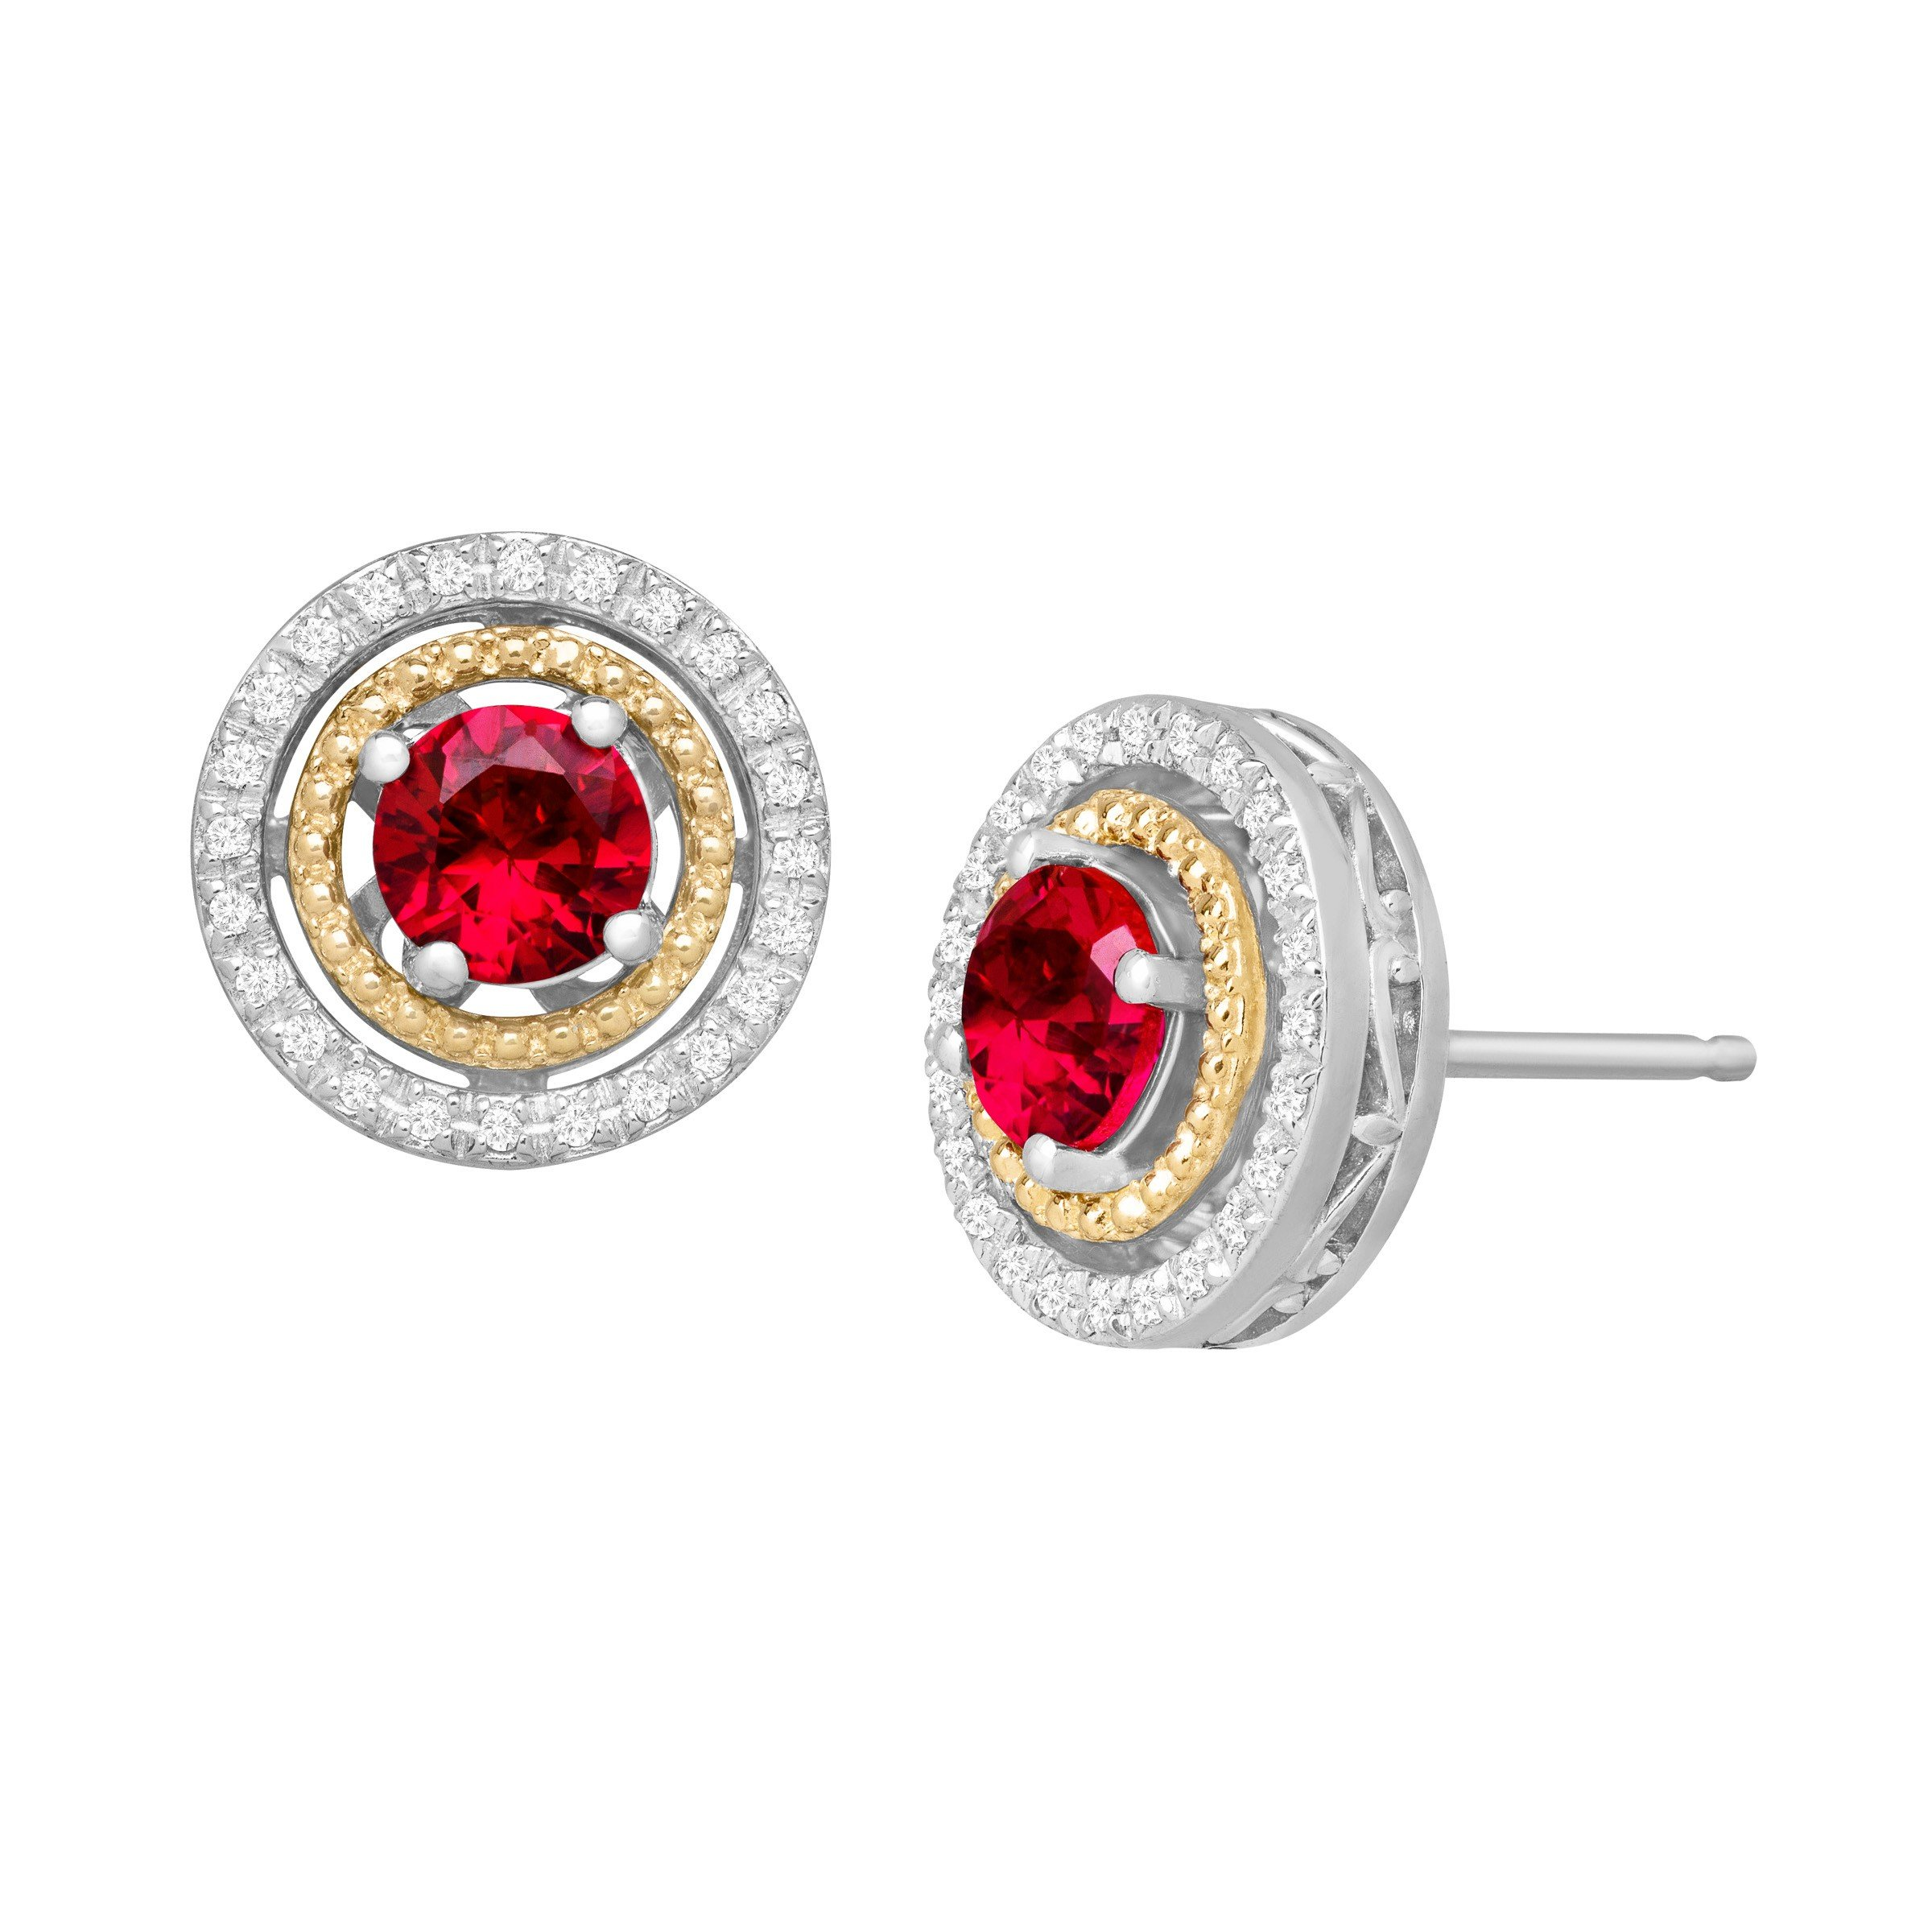 1 1/3 ct Created Ruby & 1/8 ct Diamond Stud Earrings in Sterling Silver and 14K Gold by Finecraft (Image #1)